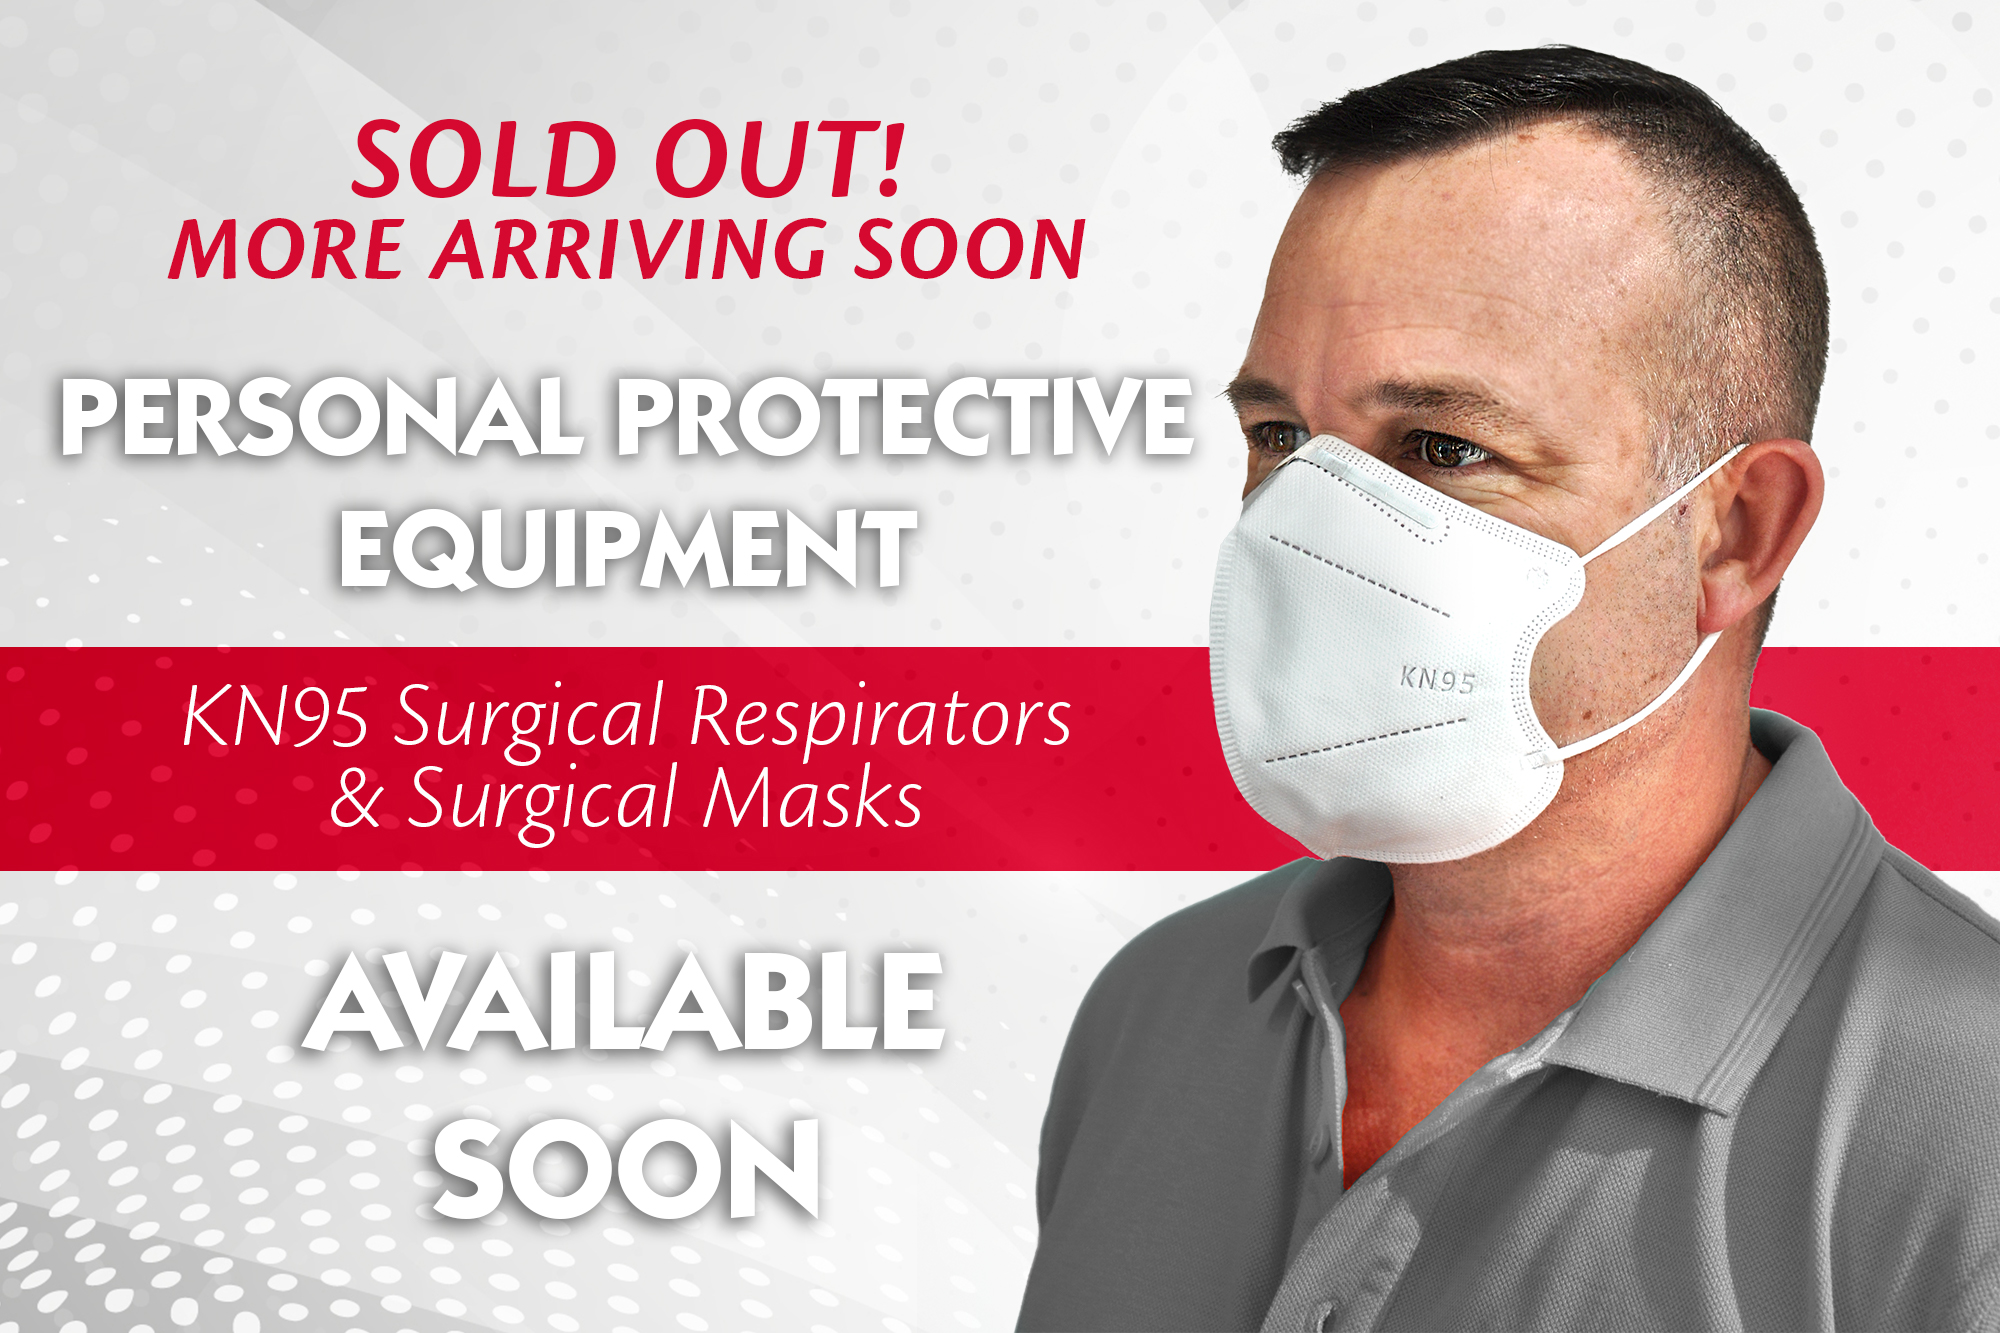 PPE Masks Available Soon